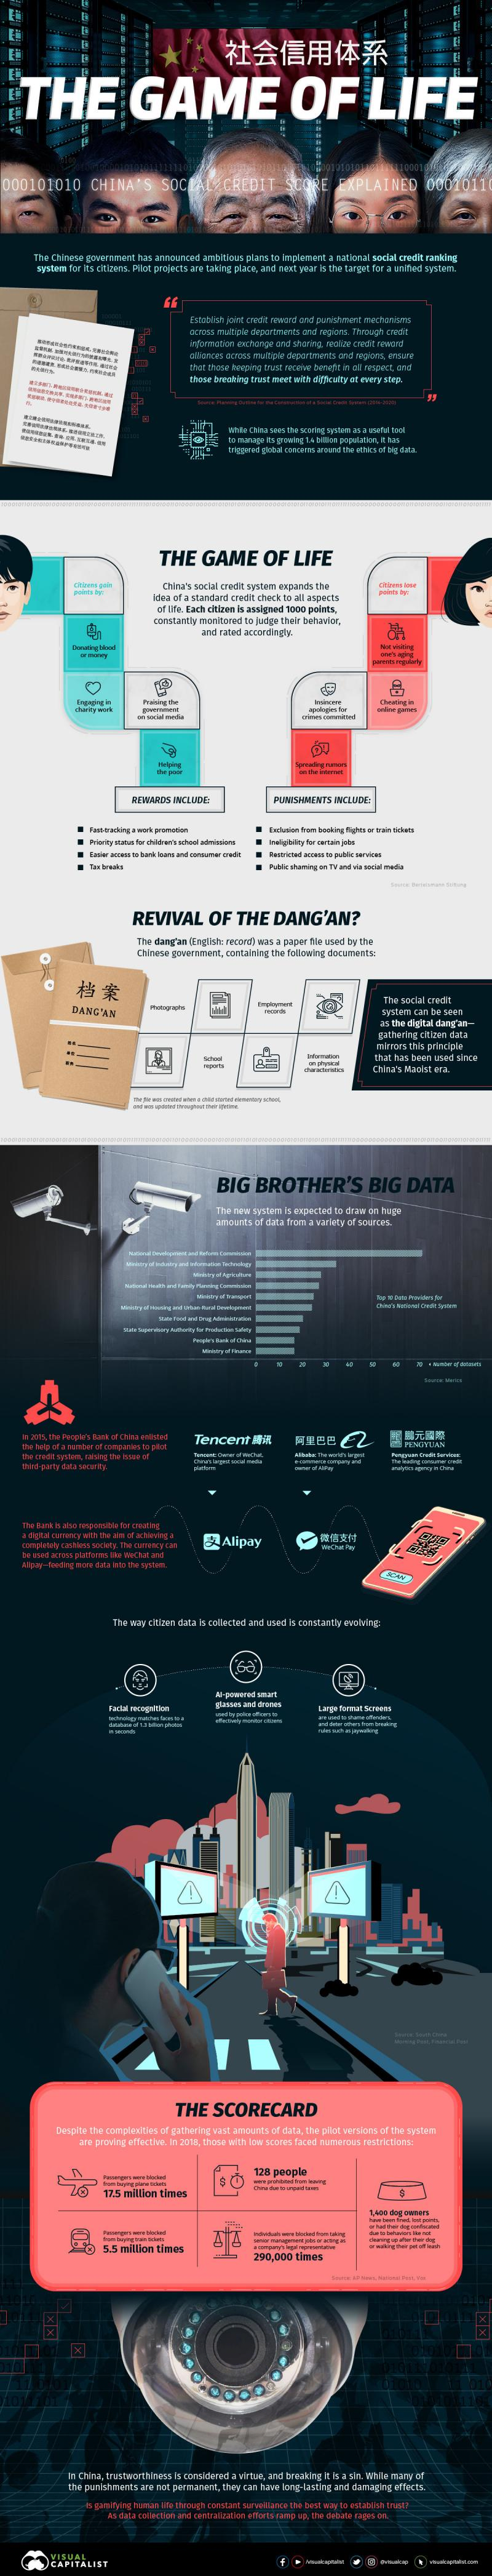 The Game of Life: Visualizing #China Social Credit System #Infographic